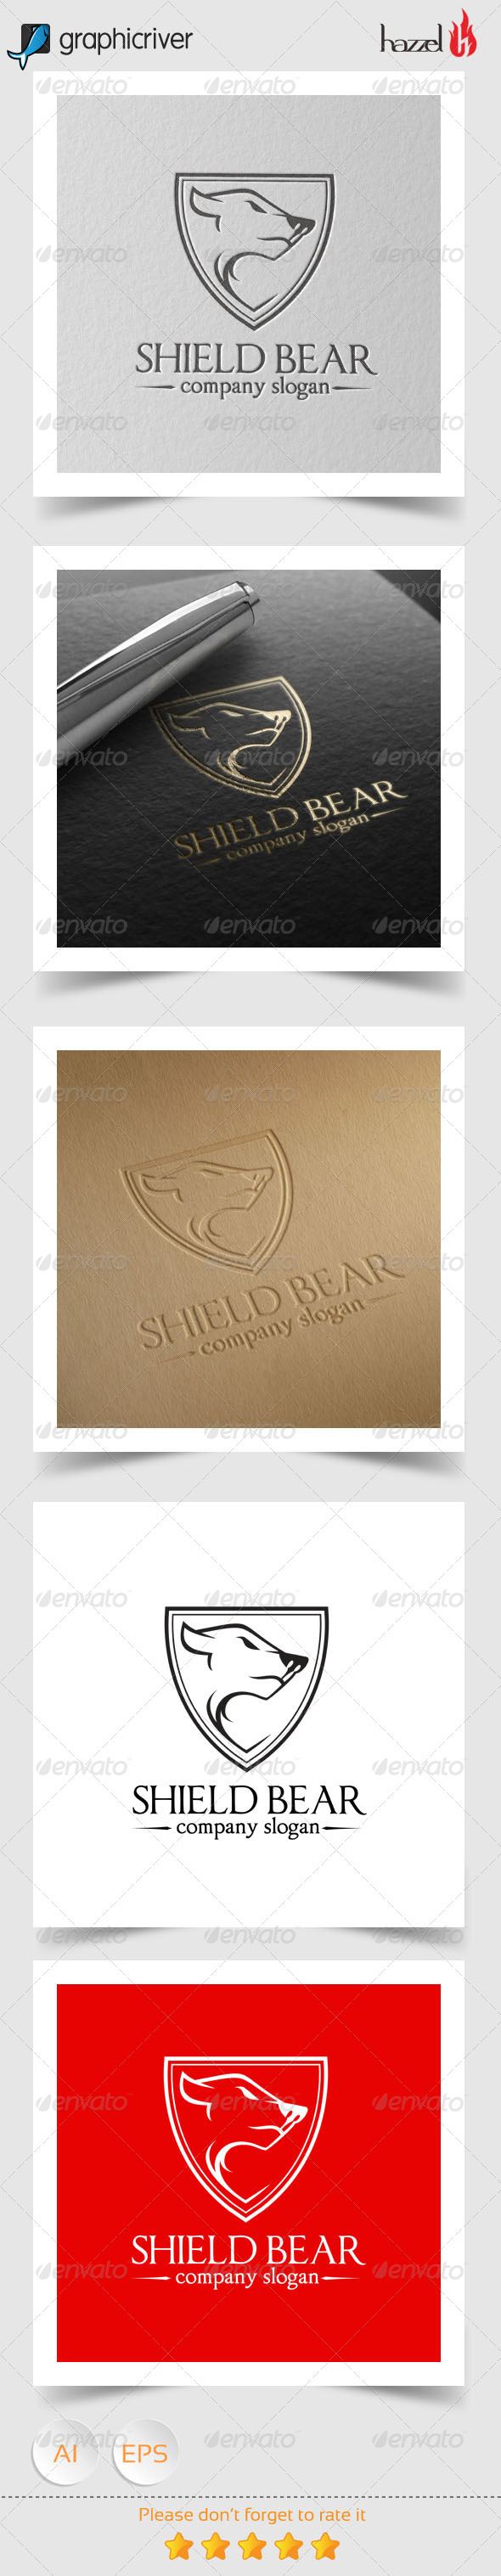 Shield Bear Logo